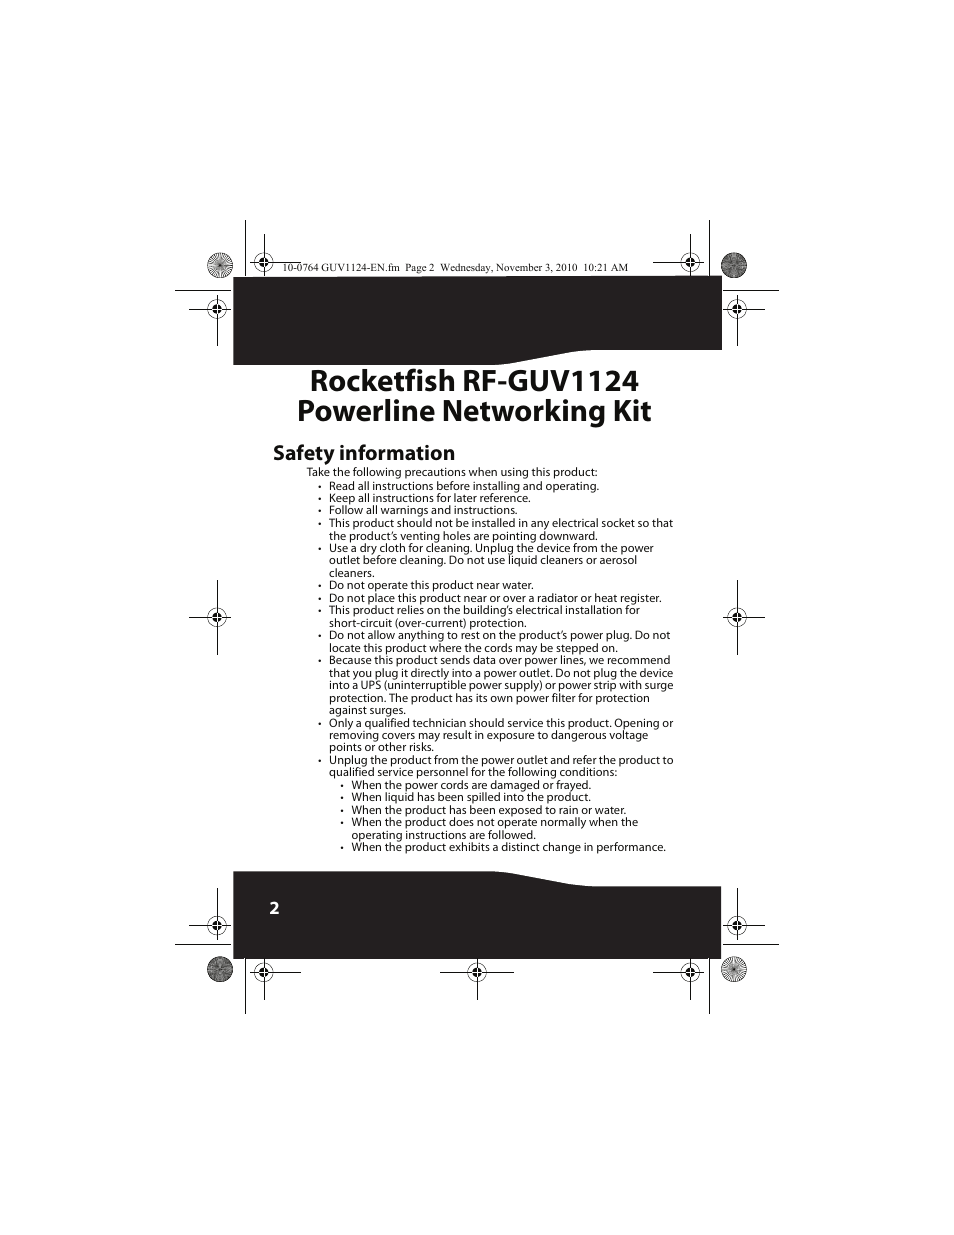 Safety information, Rocketfish rf-guv1124 powerline